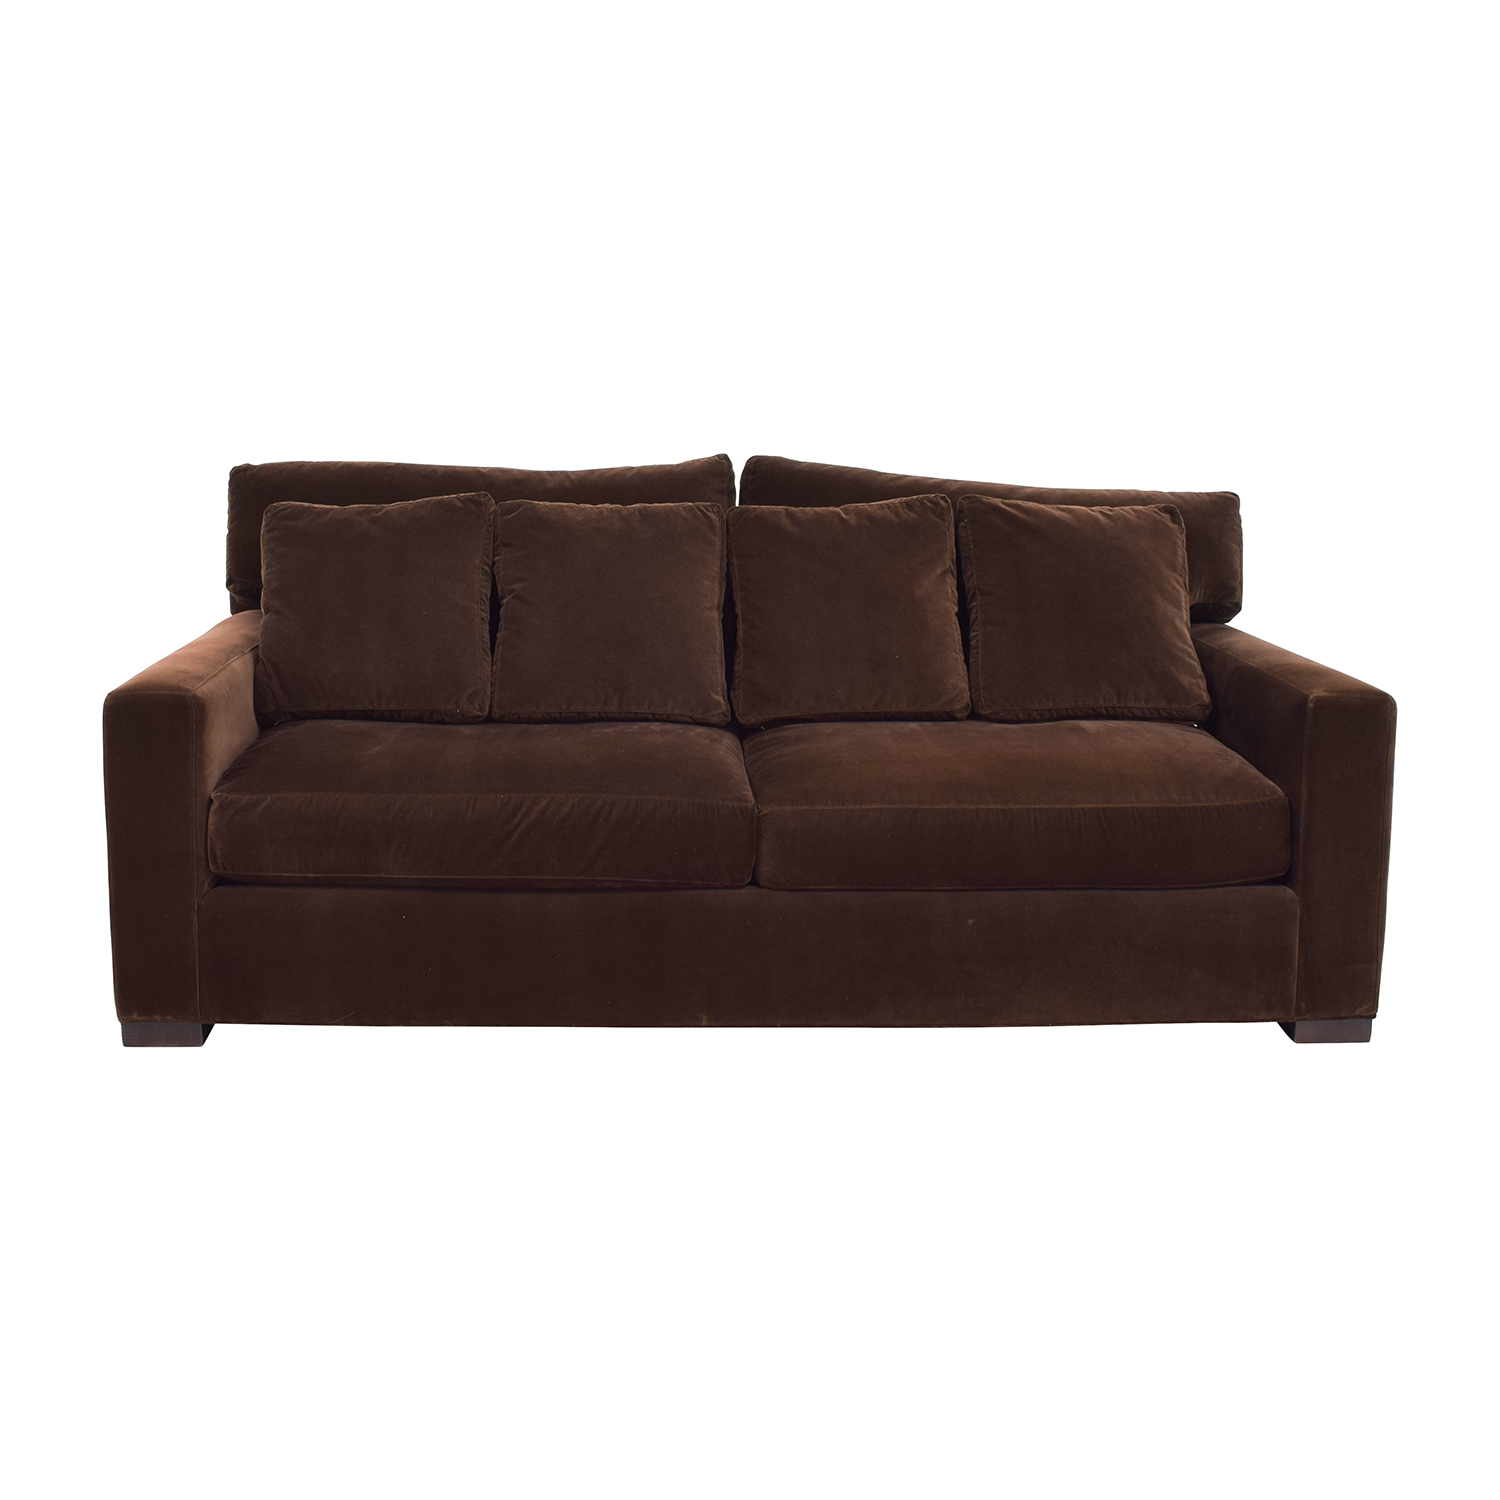 Crate and Barrel Crate & Barrel Axis II Brown Velvet Sofa on sale